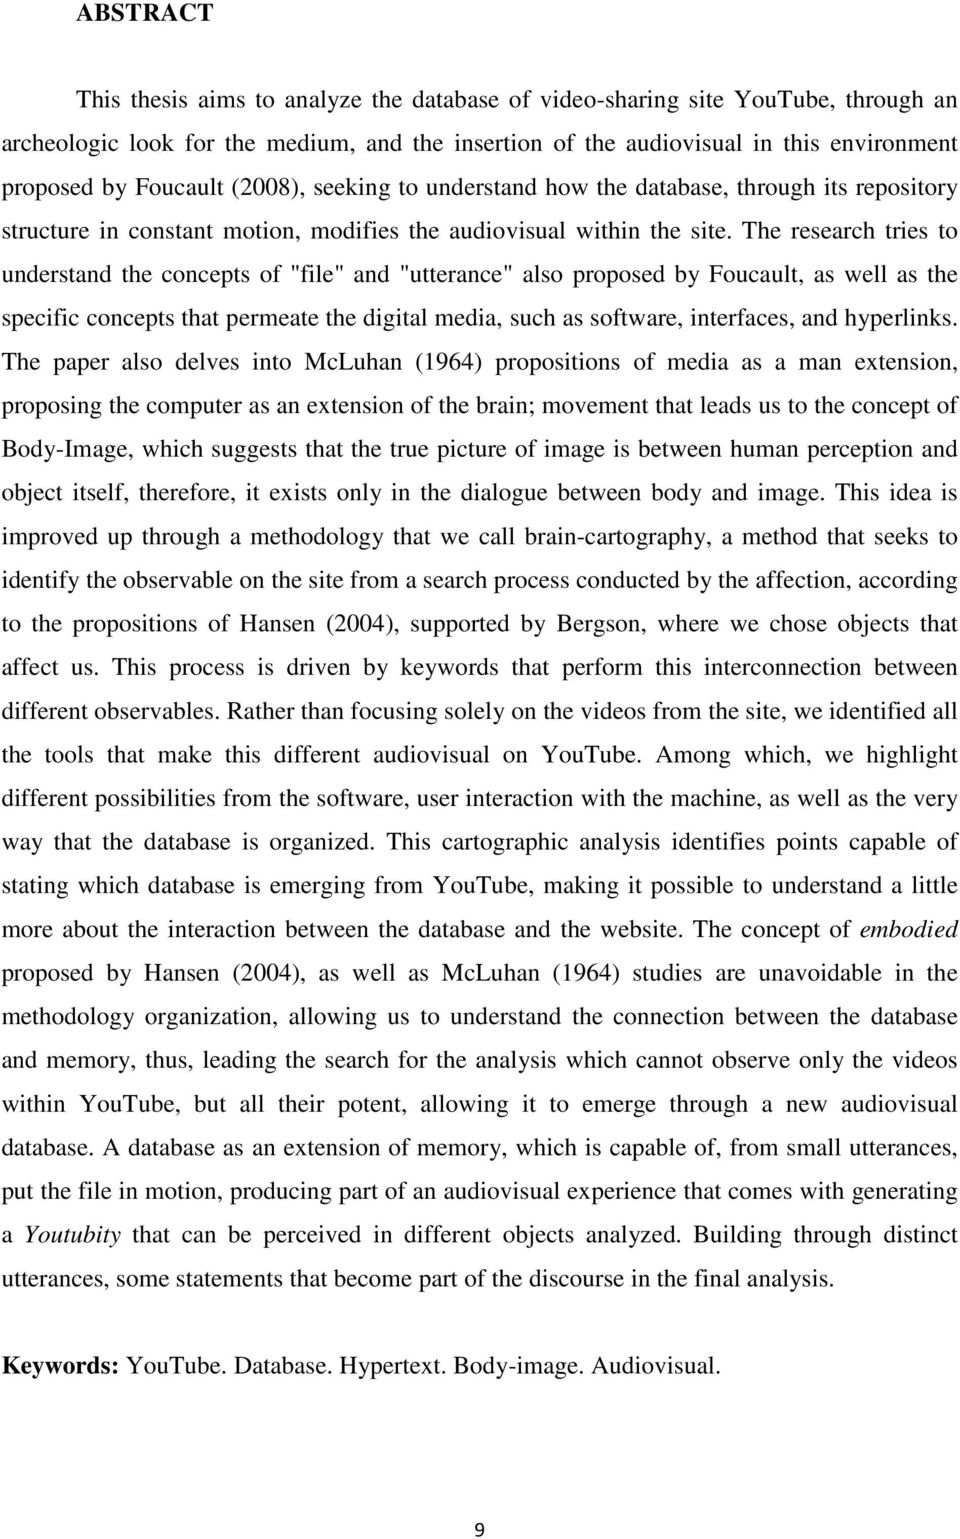 "The research tries to understand the concepts of ""file"" and ""utterance"" also proposed by Foucault, as well as the specific concepts that permeate the digital media, such as software, interfaces, and"